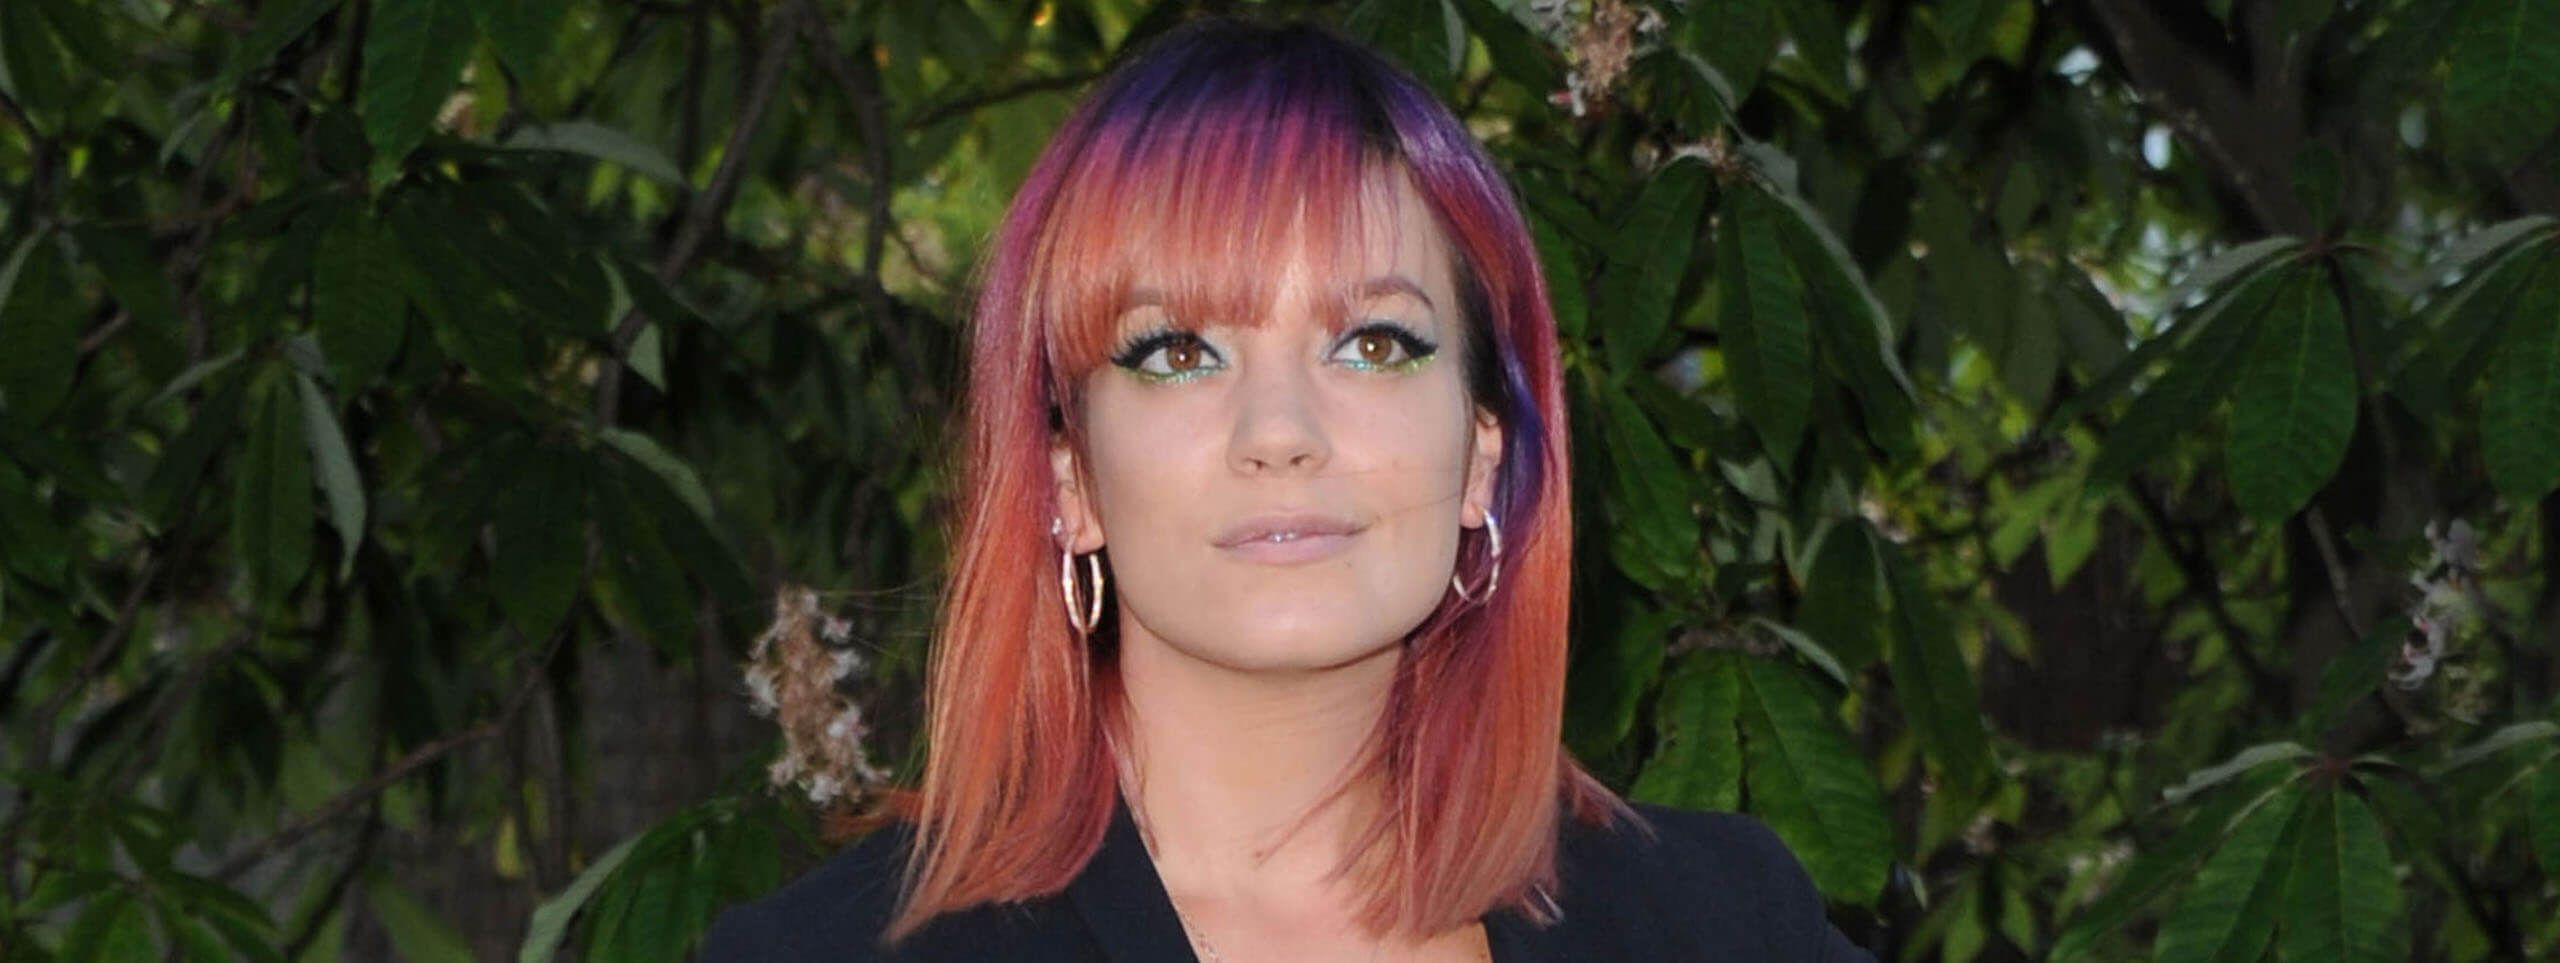 Multicoloured hair with fringed hairstyle